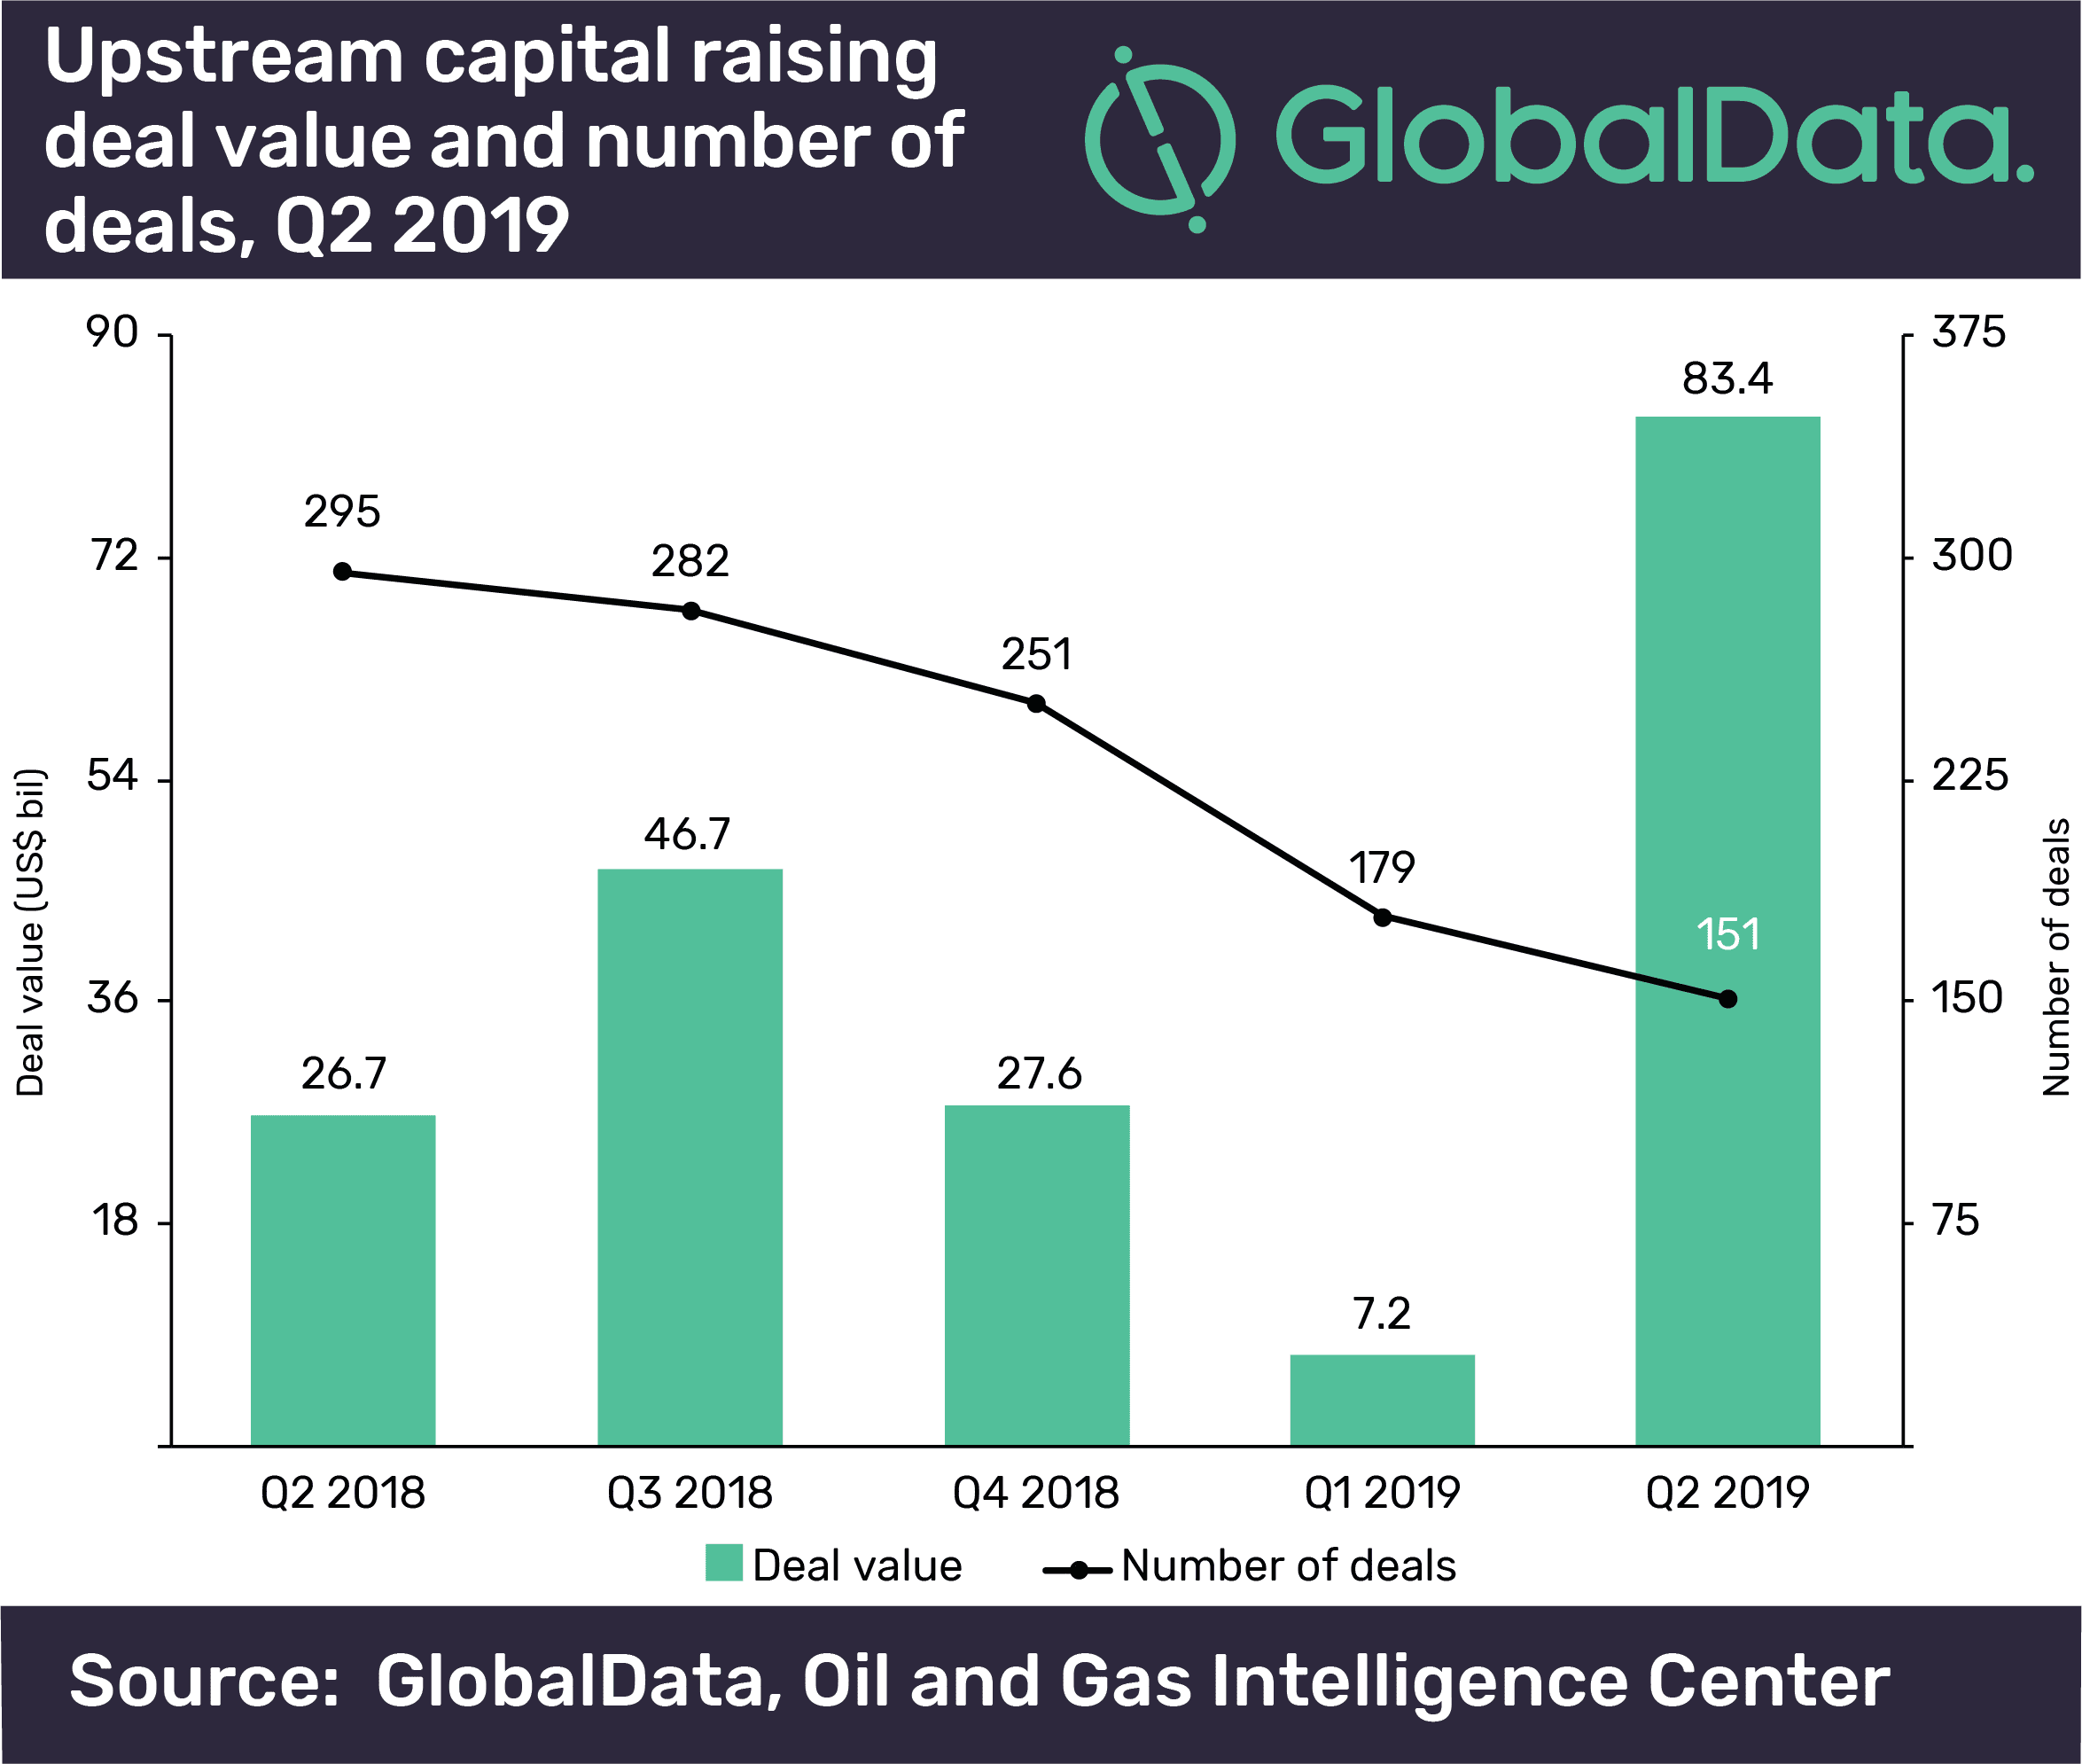 Upstream oil and gas M&A and capital raising deals totaled US$130.5bn in Q2 2019